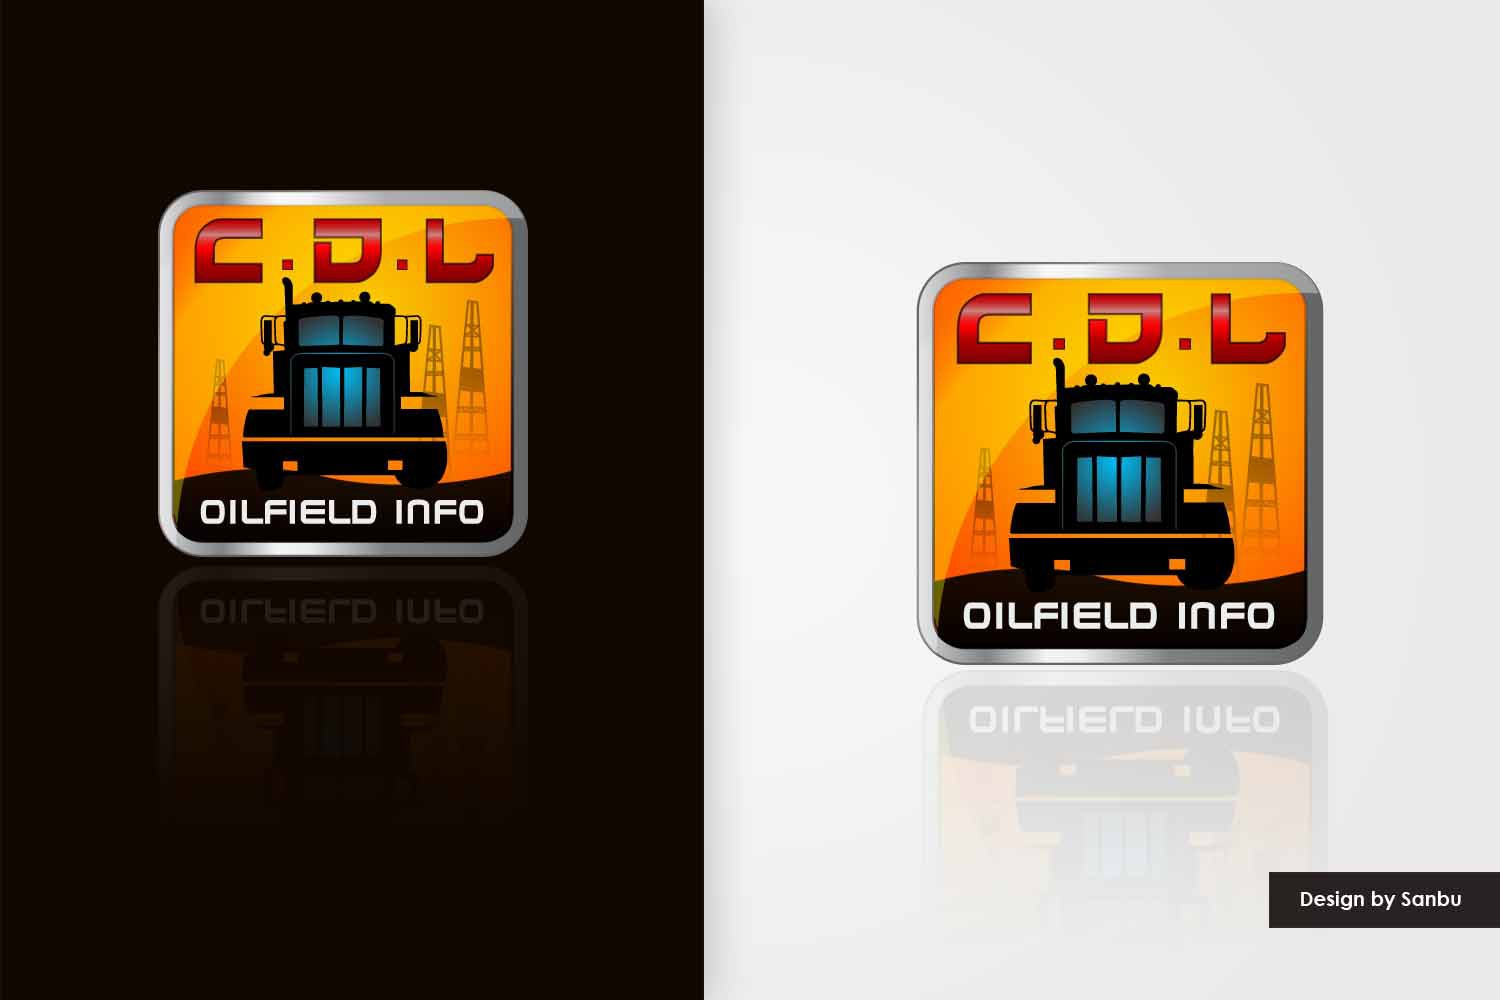 New logo wanted for CDL OILFIELD INFO